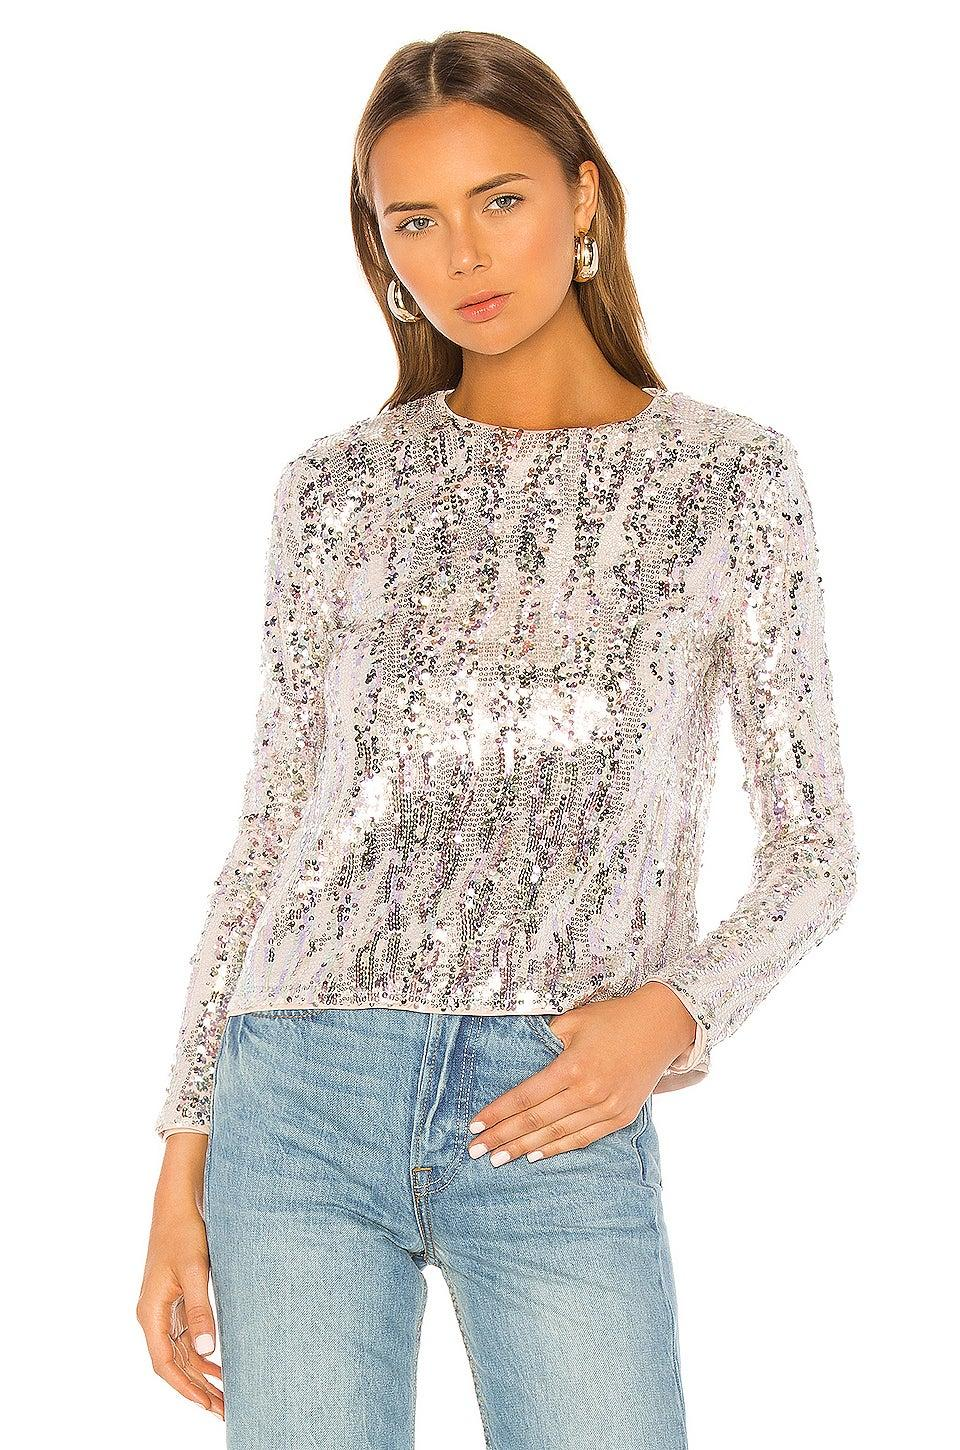 """<strong><h3><a href=""""http://revolve.com"""" rel=""""nofollow noopener"""" target=""""_blank"""" data-ylk=""""slk:Holiday Season Sequins"""" class=""""link rapid-noclick-resp"""">Holiday Season Sequins</a></h3></strong><a href=""""https://www.instagram.com/patsyadaum/https://www.instagram.com/patsyadaum/"""" rel=""""nofollow noopener"""" target=""""_blank"""" data-ylk=""""slk:Patsy Daum, 16"""" class=""""link rapid-noclick-resp""""><strong>Patsy Daum, 16</strong></a><br>Since the holiday season is upon us, and I am inevitably in need of the perfect holiday outfit. This <a href=""""https://www.revolve.com/majorelle-christiana-top/dp/MALR-WS416/"""" rel=""""nofollow noopener"""" target=""""_blank"""" data-ylk=""""slk:silver sequin top from Majorelle"""" class=""""link rapid-noclick-resp"""">silver sequin top from Majorelle</a> is great because it is definitely festive but nondenominational as well. It is also suitable for any occasion since silver is great for any time of year. I definitely picture myself wearing these with a nice pair of white or blue jeans depending on the formalness of the event I plan to wear it at. When Black Friday finally arrives, this will definitely be the first thing I purchase as I know there is always room for a little sparkle in your wardrobe.<br><br><strong>Majorelle</strong> Christiana Top, $, available at <a href=""""https://www.revolve.com/majorelle-christiana-top/dp/MALR-WS416/"""" rel=""""nofollow noopener"""" target=""""_blank"""" data-ylk=""""slk:Revolve"""" class=""""link rapid-noclick-resp"""">Revolve</a>"""